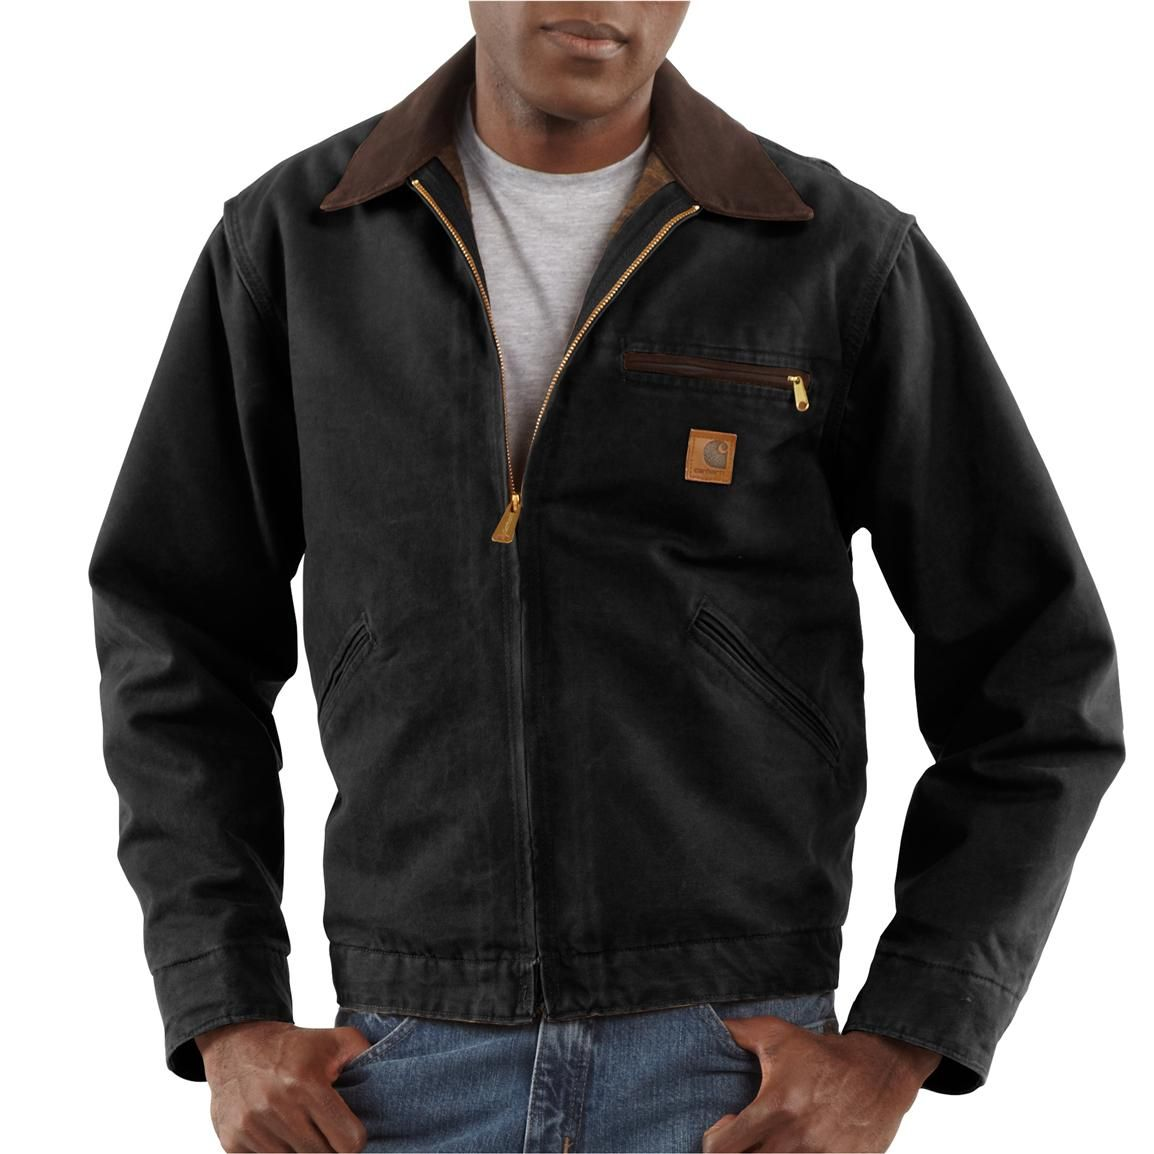 Carhartt Blanket Lined Sandstone Detroit Jacket Broken In Warmth And Toughness For The Hardest Carhartt Detroit Jacket Jackets For Big Men Carhartt Jacket [ 1154 x 1154 Pixel ]